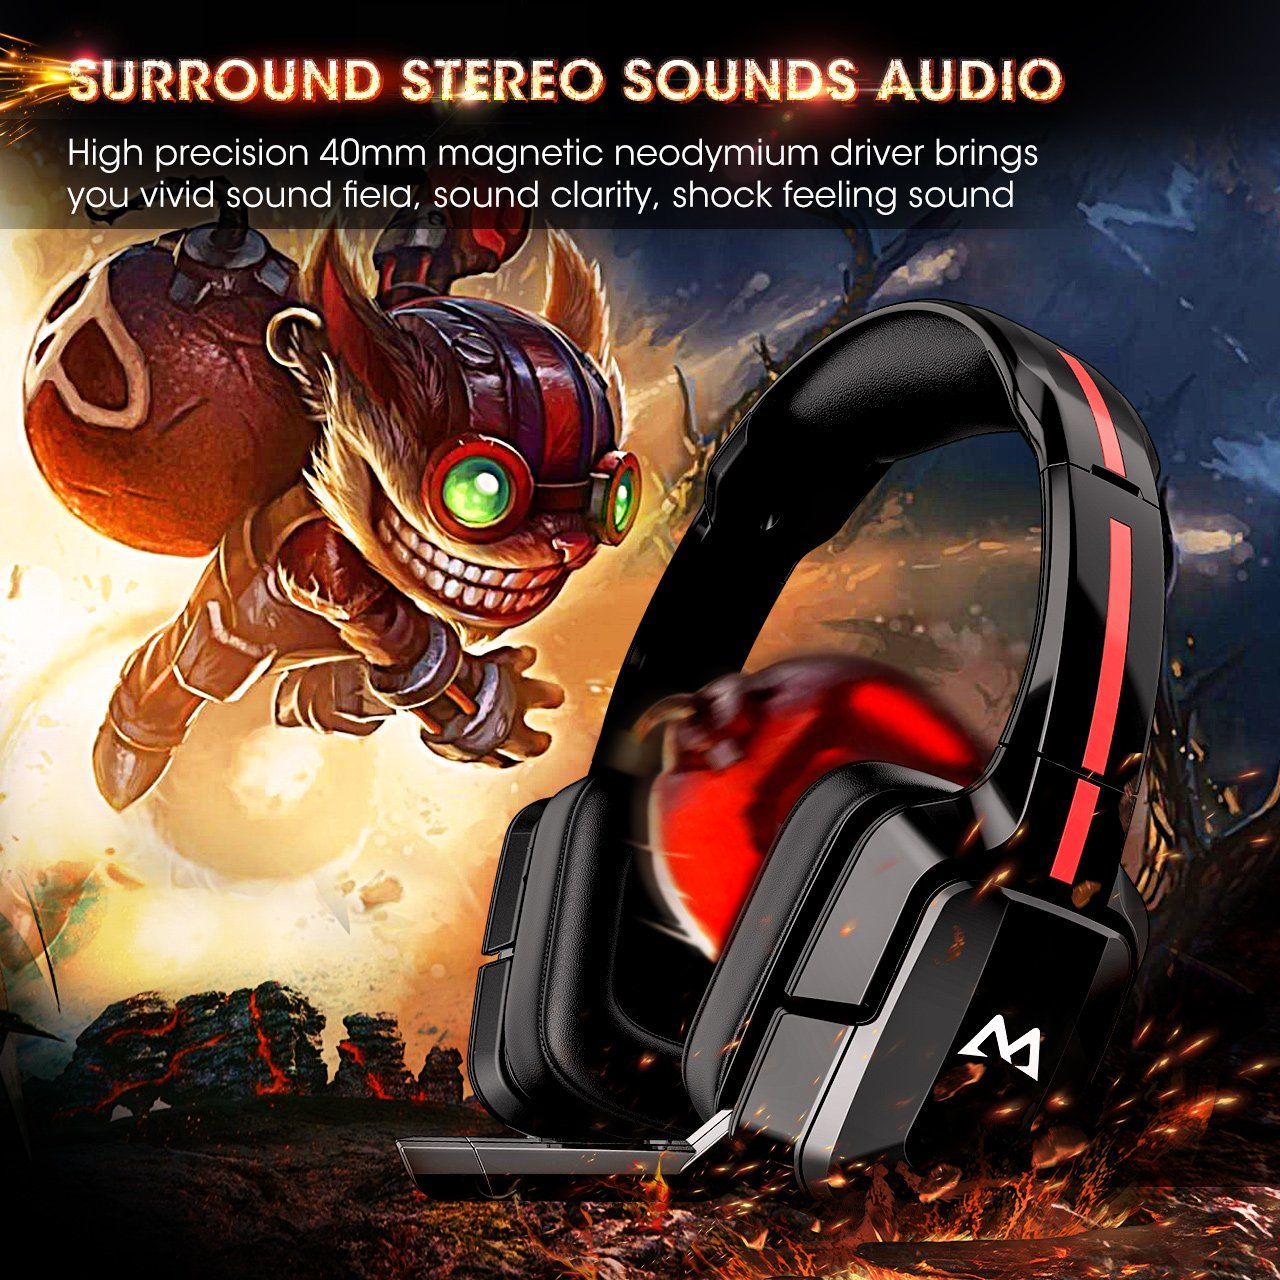 Mpow EG2 Gaming Headset for PC, Xbox one, PS4, Lightweight